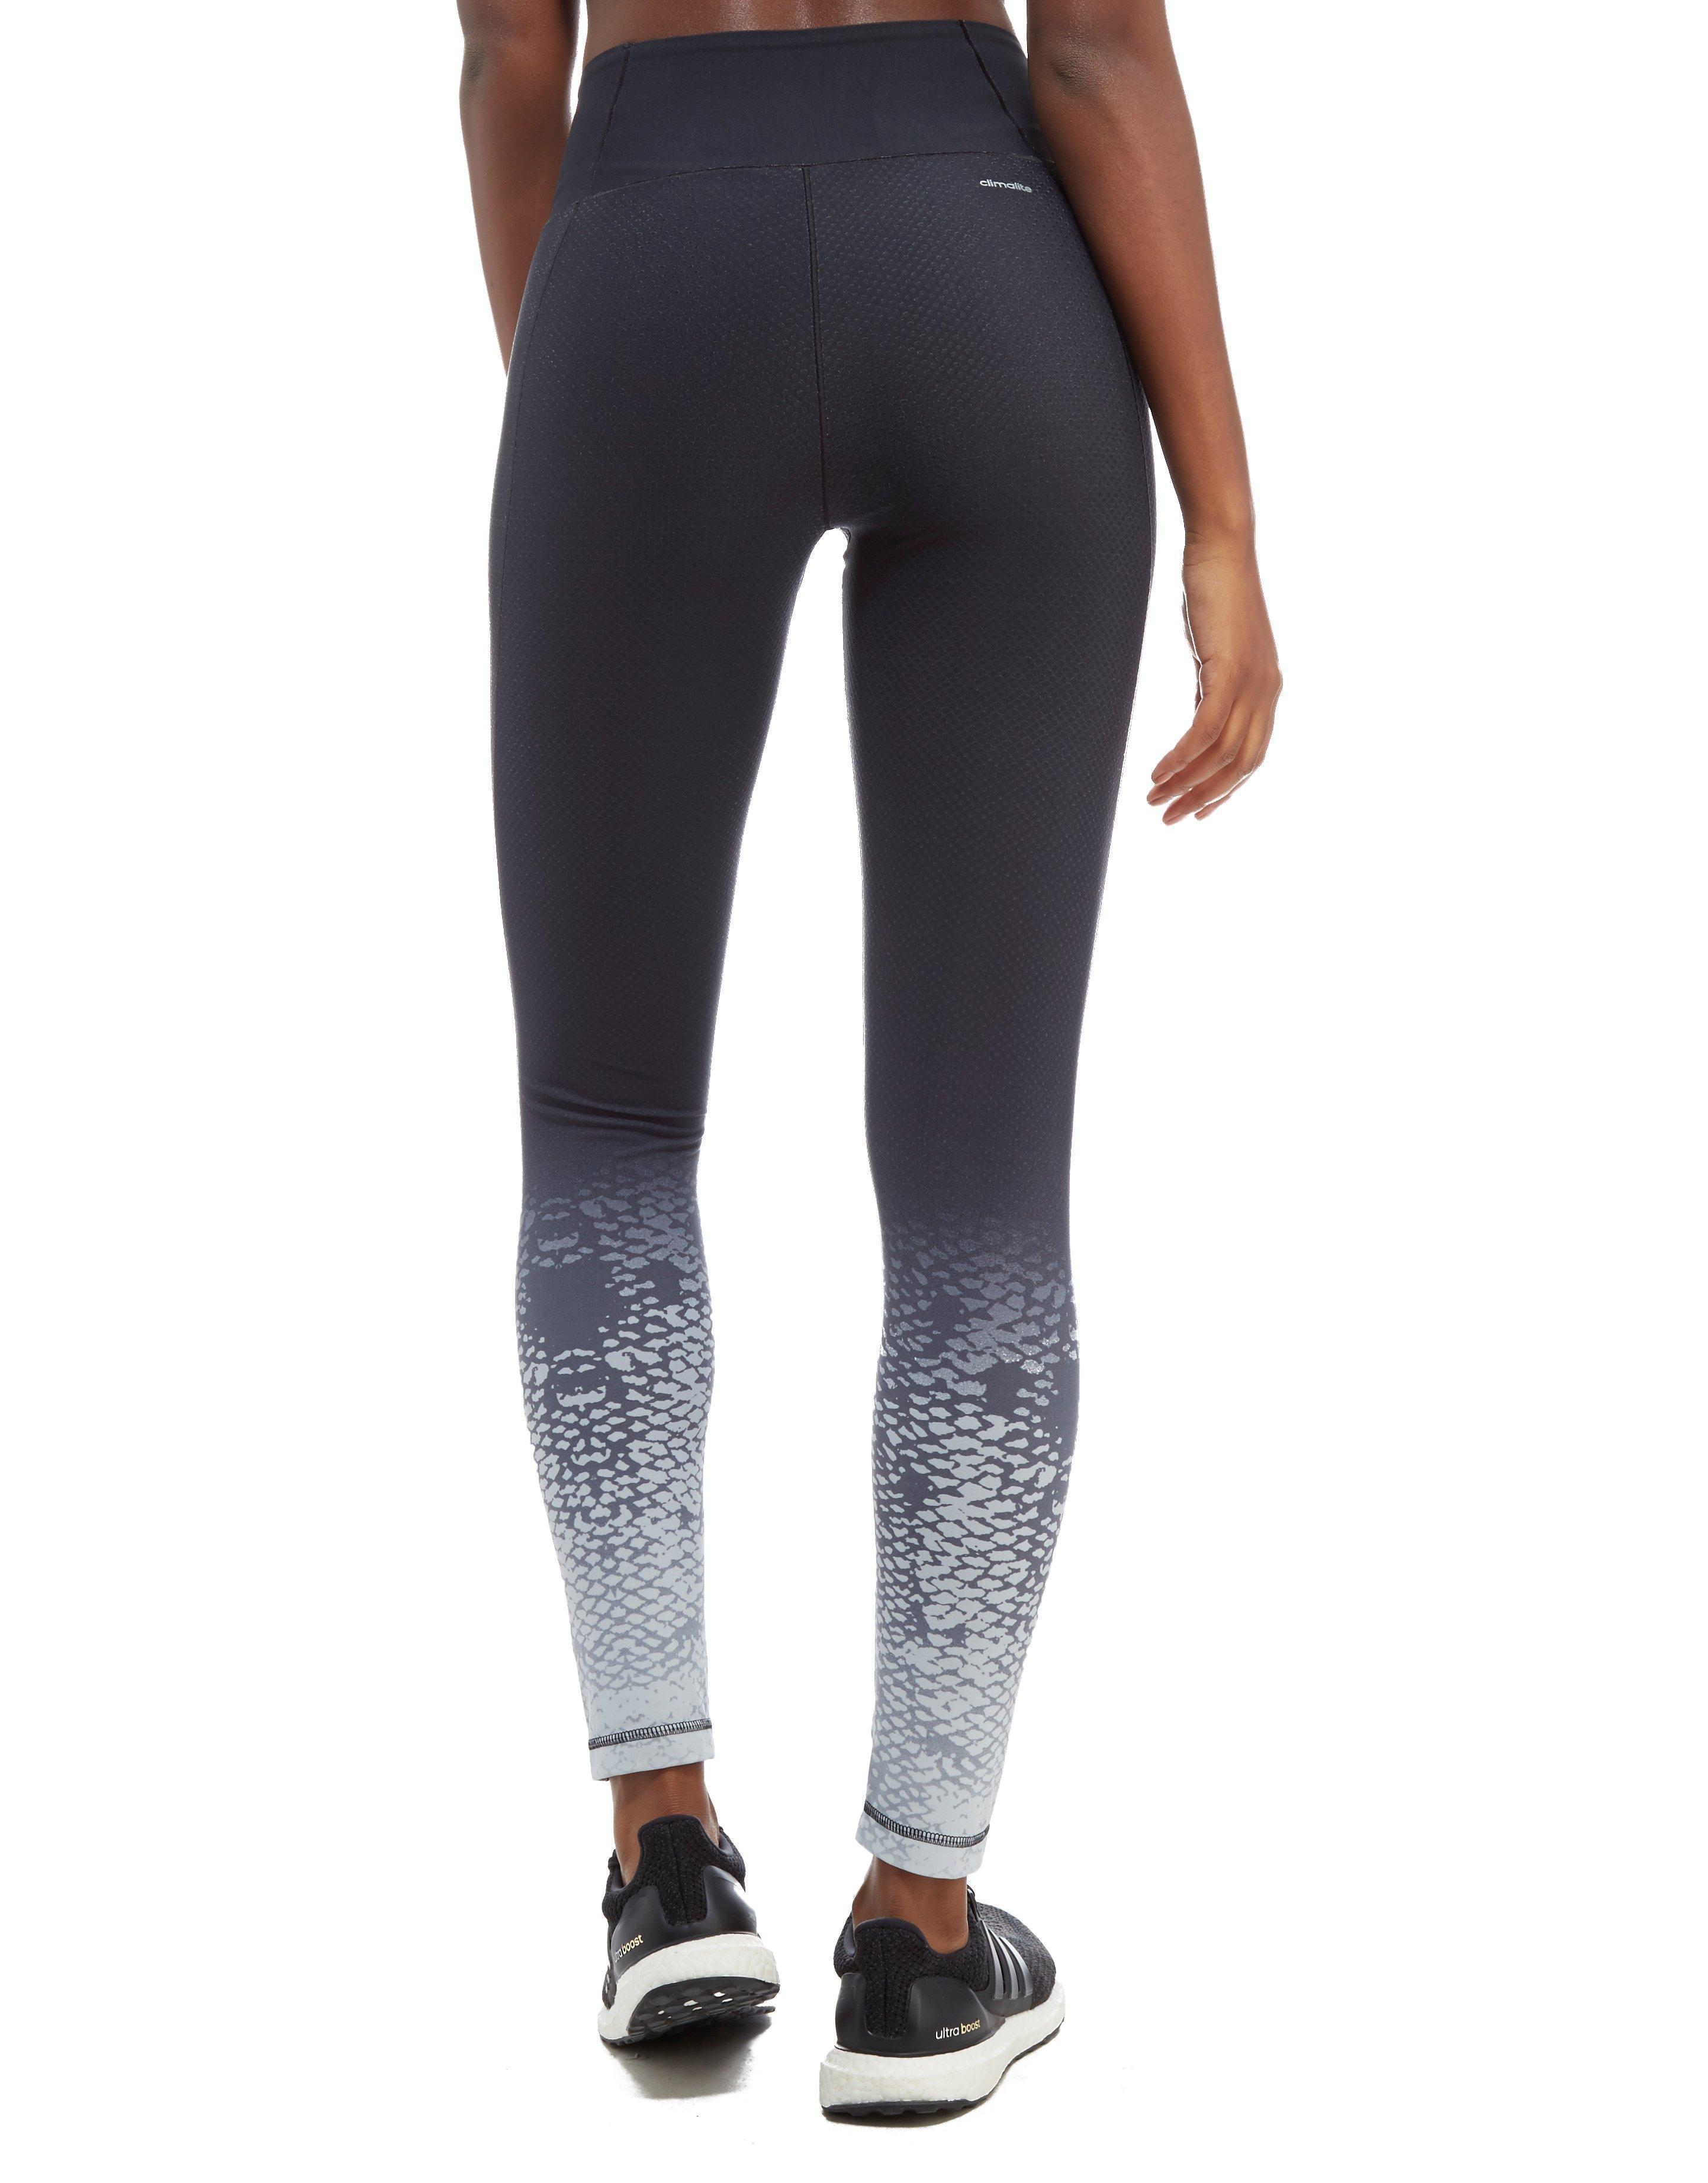 6991f94c737d9 adidas Miracle Sculpt Tights in Gray - Lyst